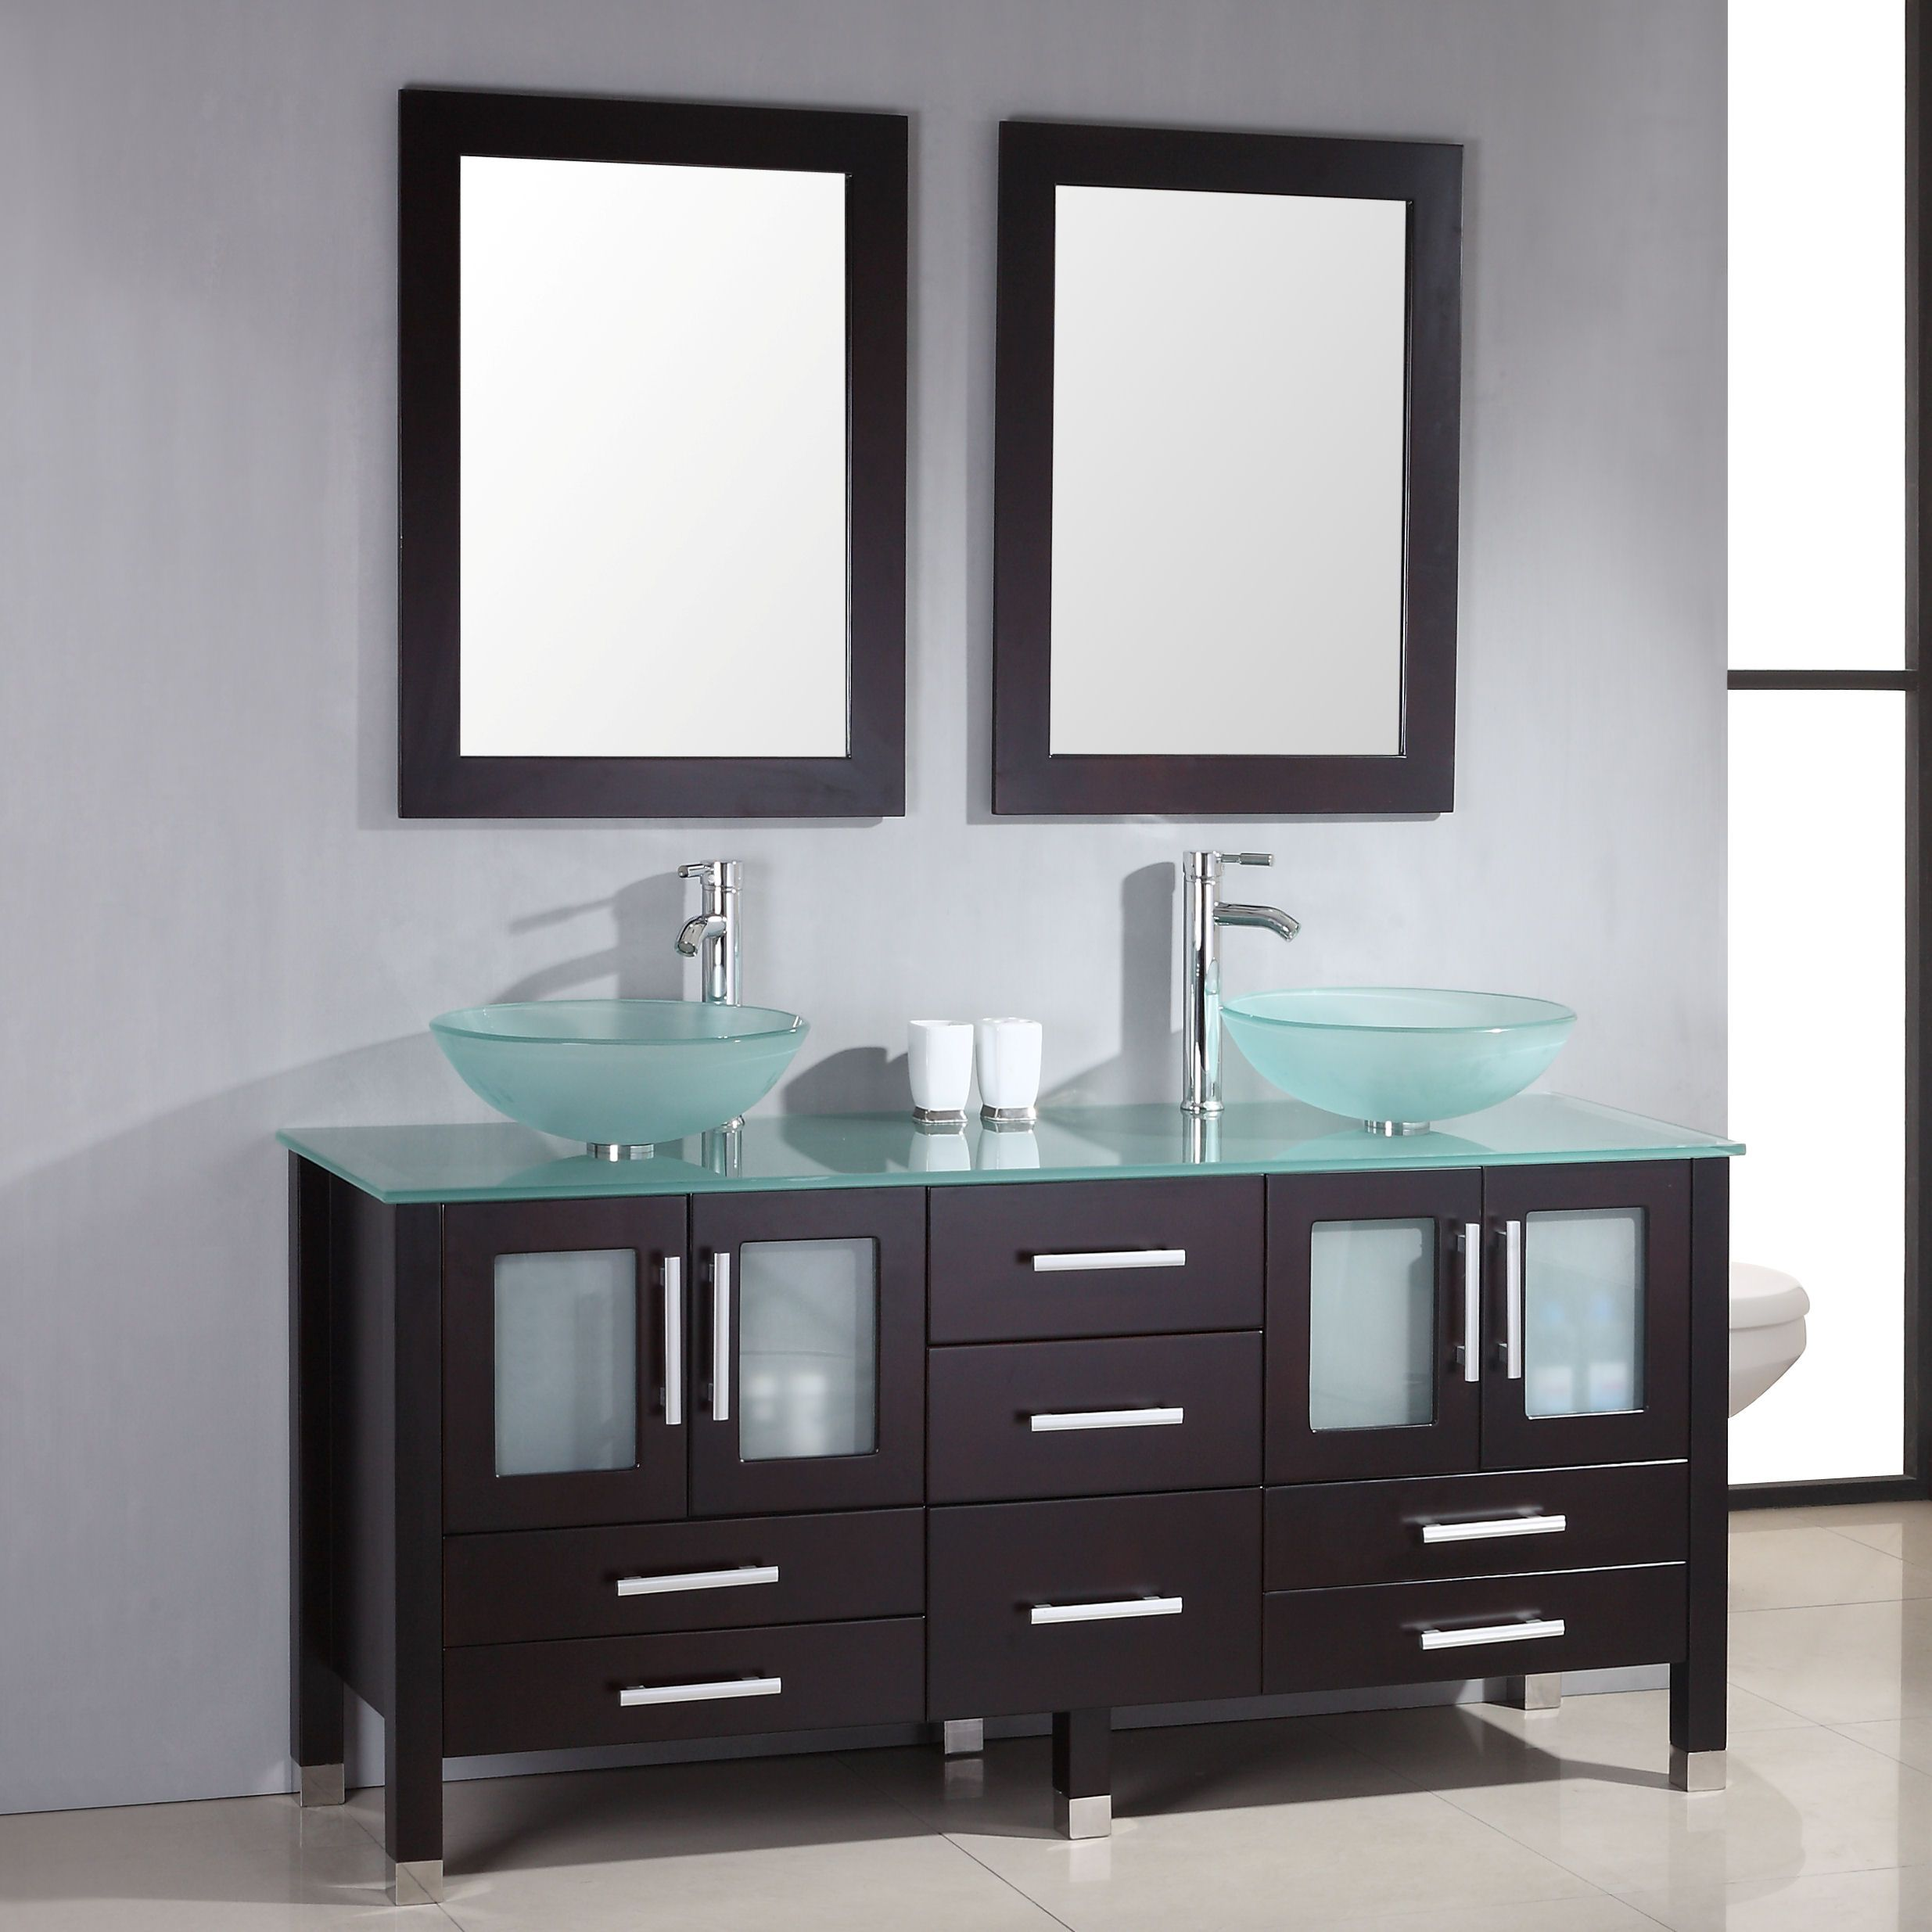 63 Bathroom Vanity Designs Single Bathroom Vanity Double Sink